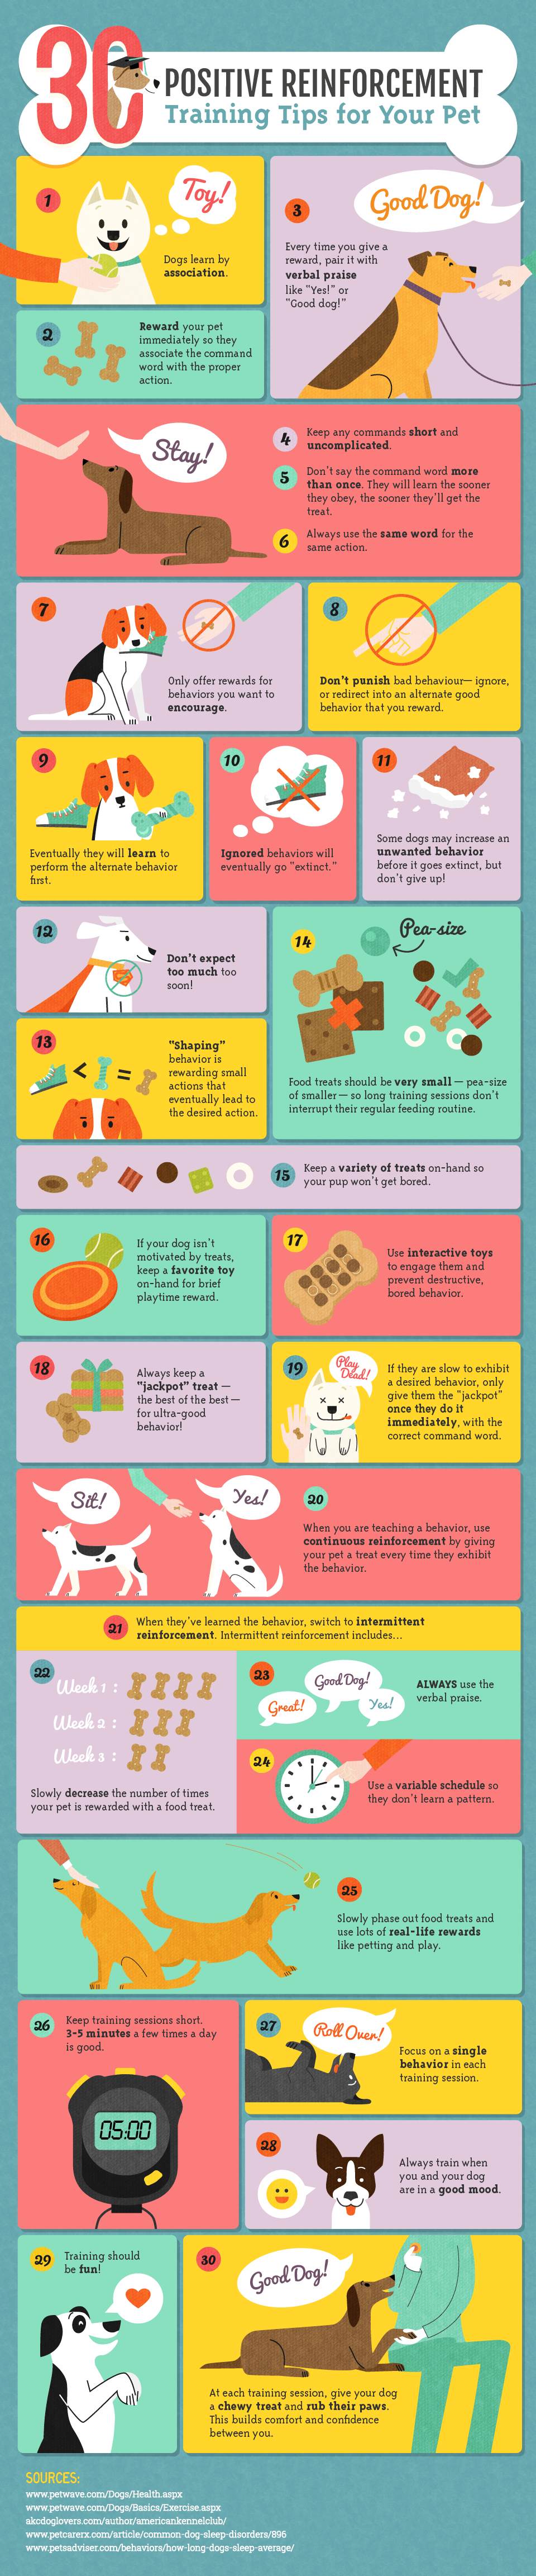 30 Positive Reinforcement Training Tips for Your Dog